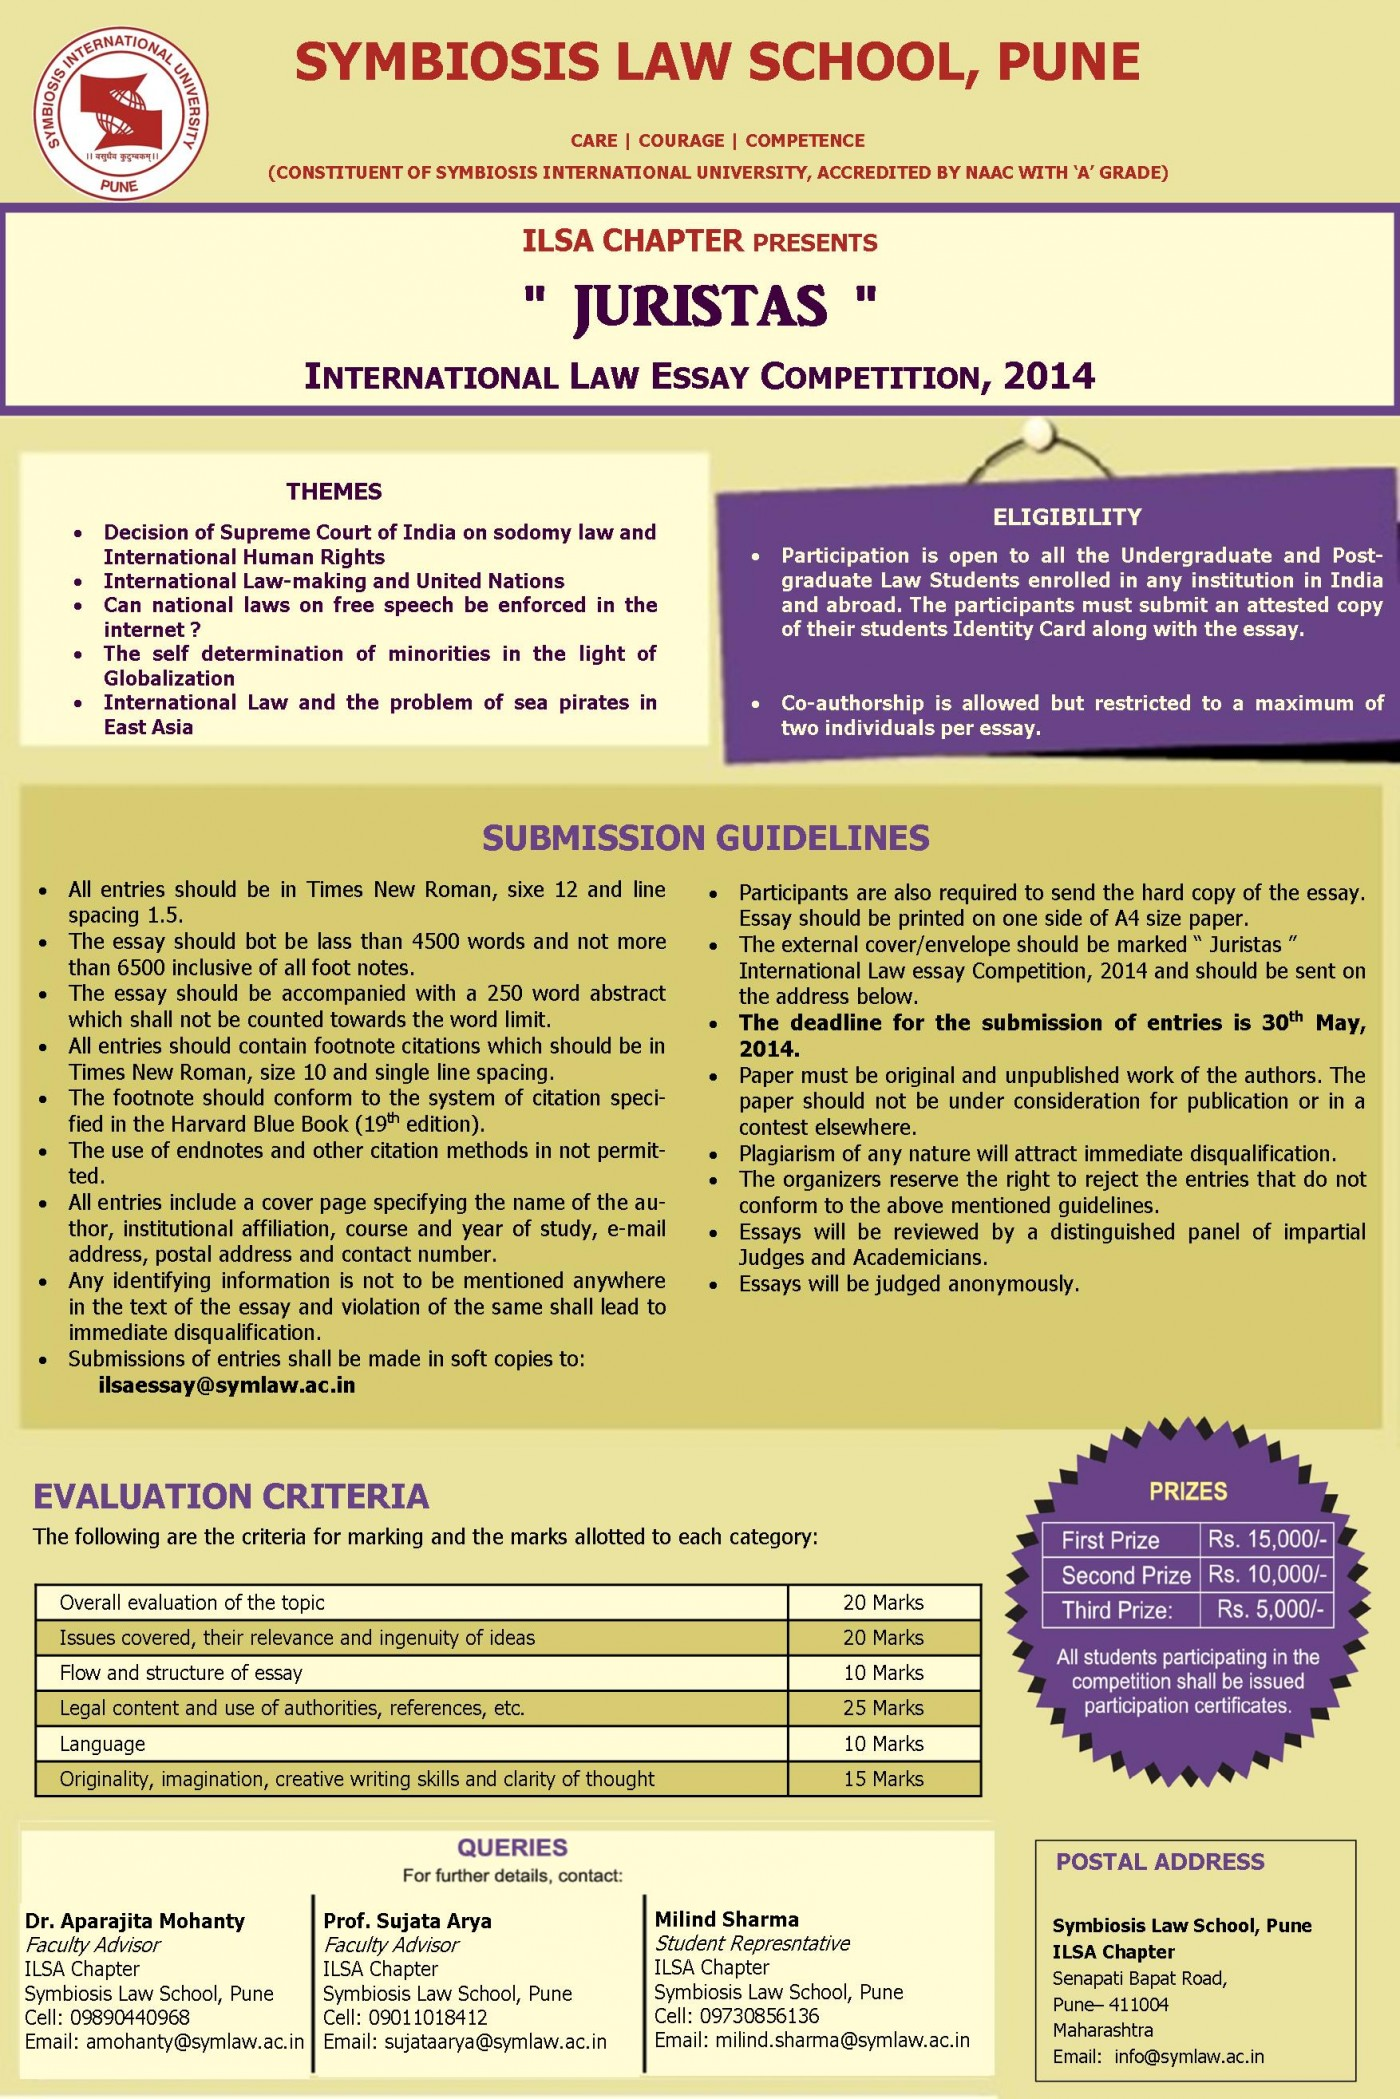 003 Juristas Poster Law Essay Writing Service Excellent School Best Uk Cheap 1400